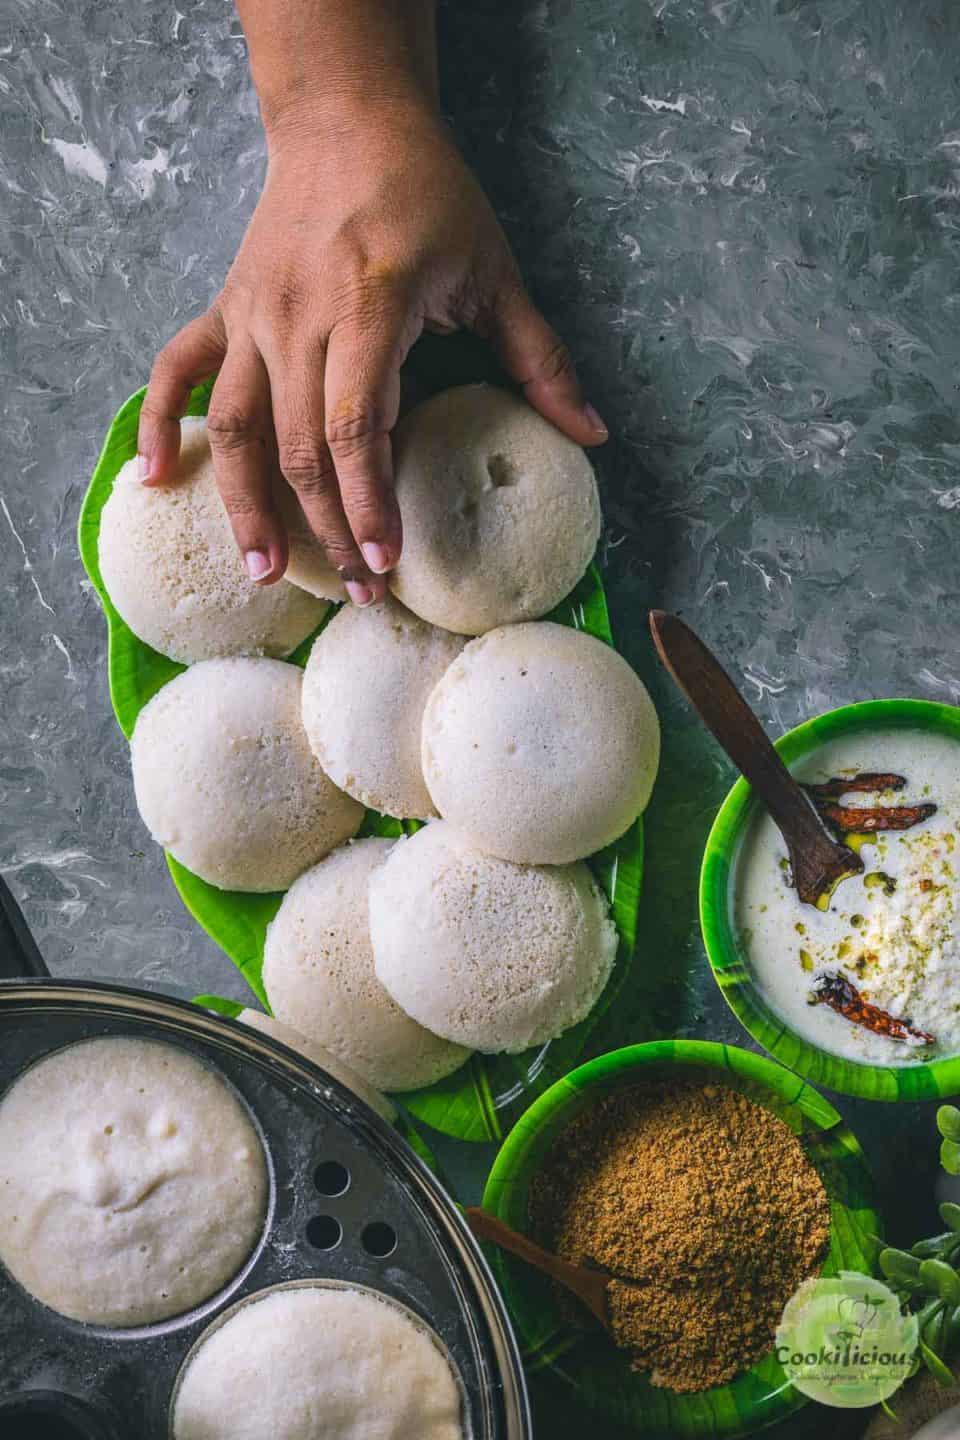 a plate full of white steamed idlis and one hand reaching out to pick one